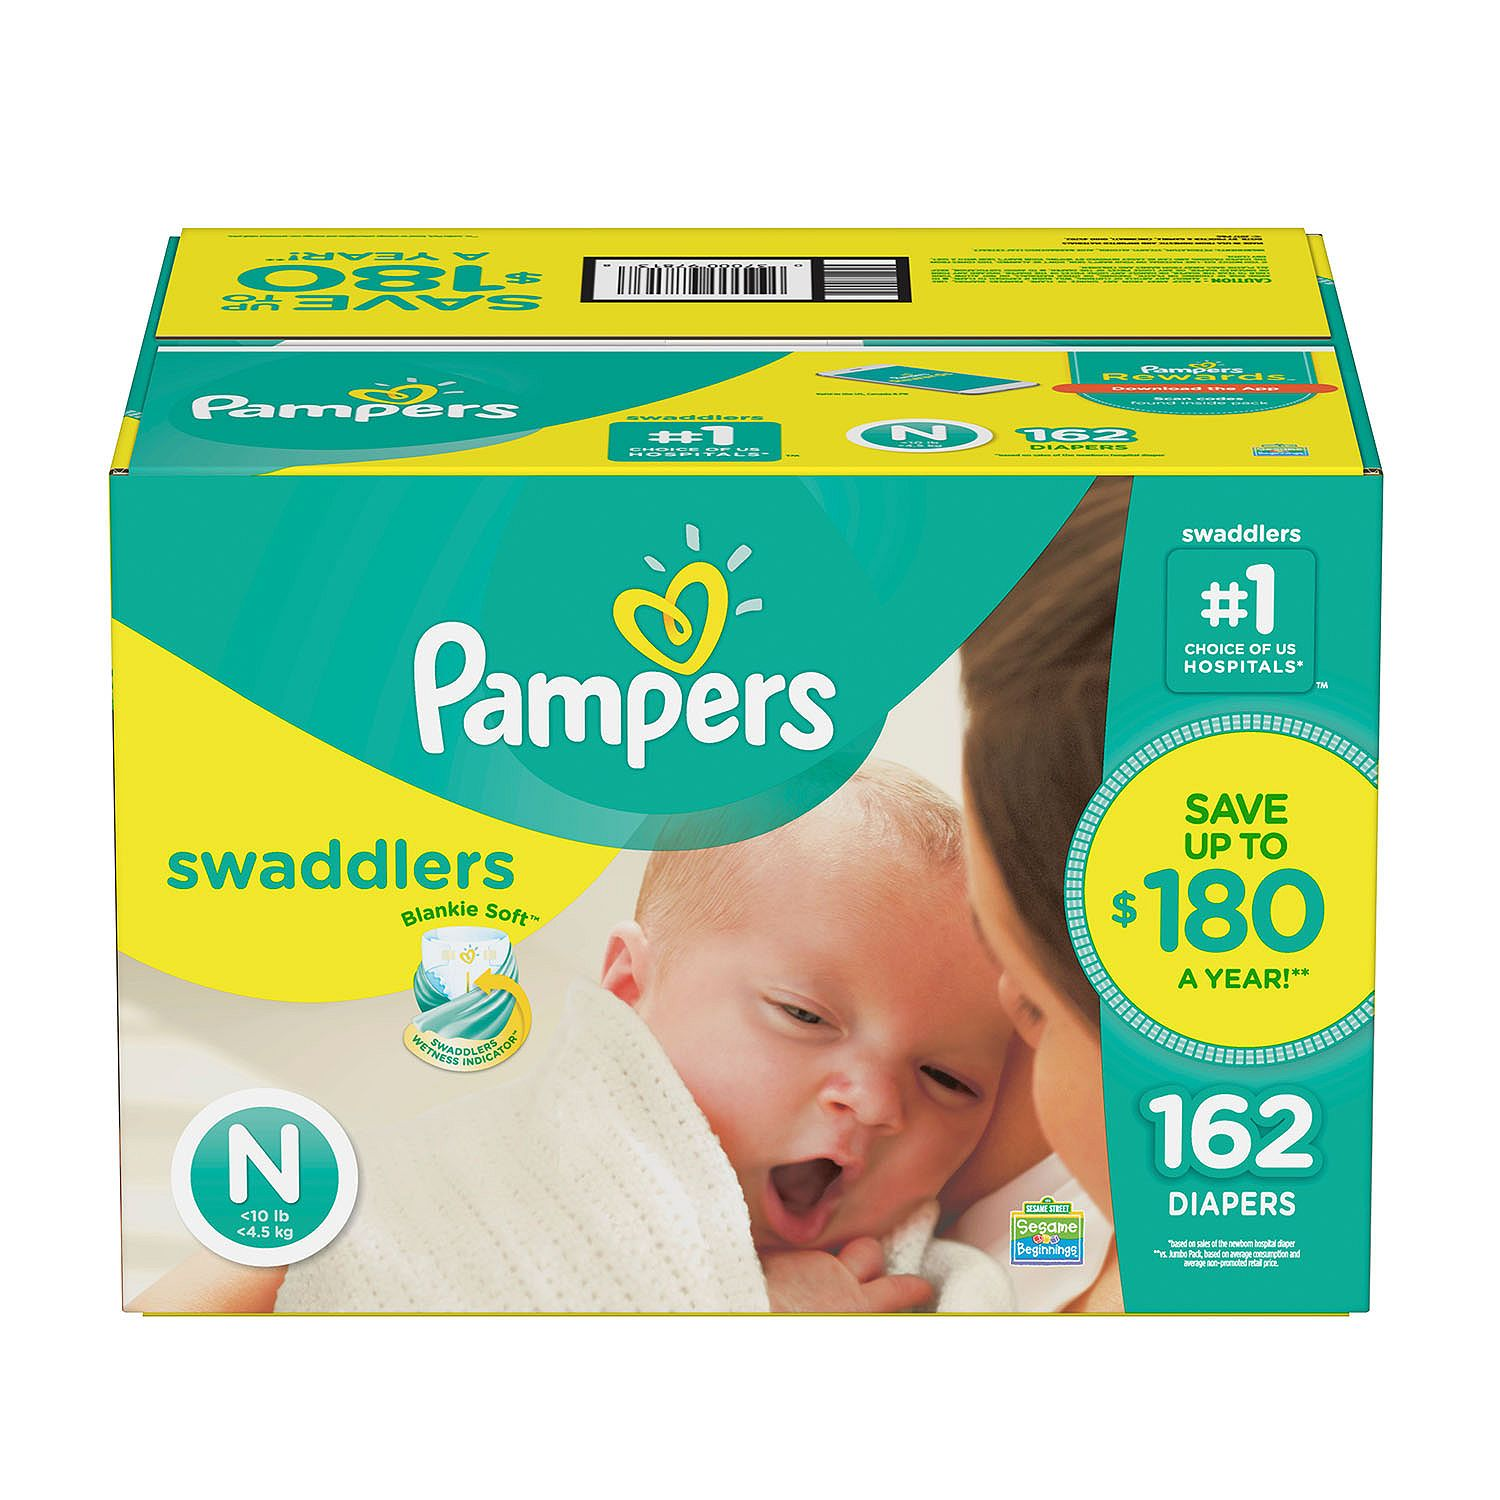 Pampers' Swaddlers Diapers Size Newborn 162 ct. ( Weight Less than 10 lb.) Bulk Qty, Free Shipping... by Branded Diapers